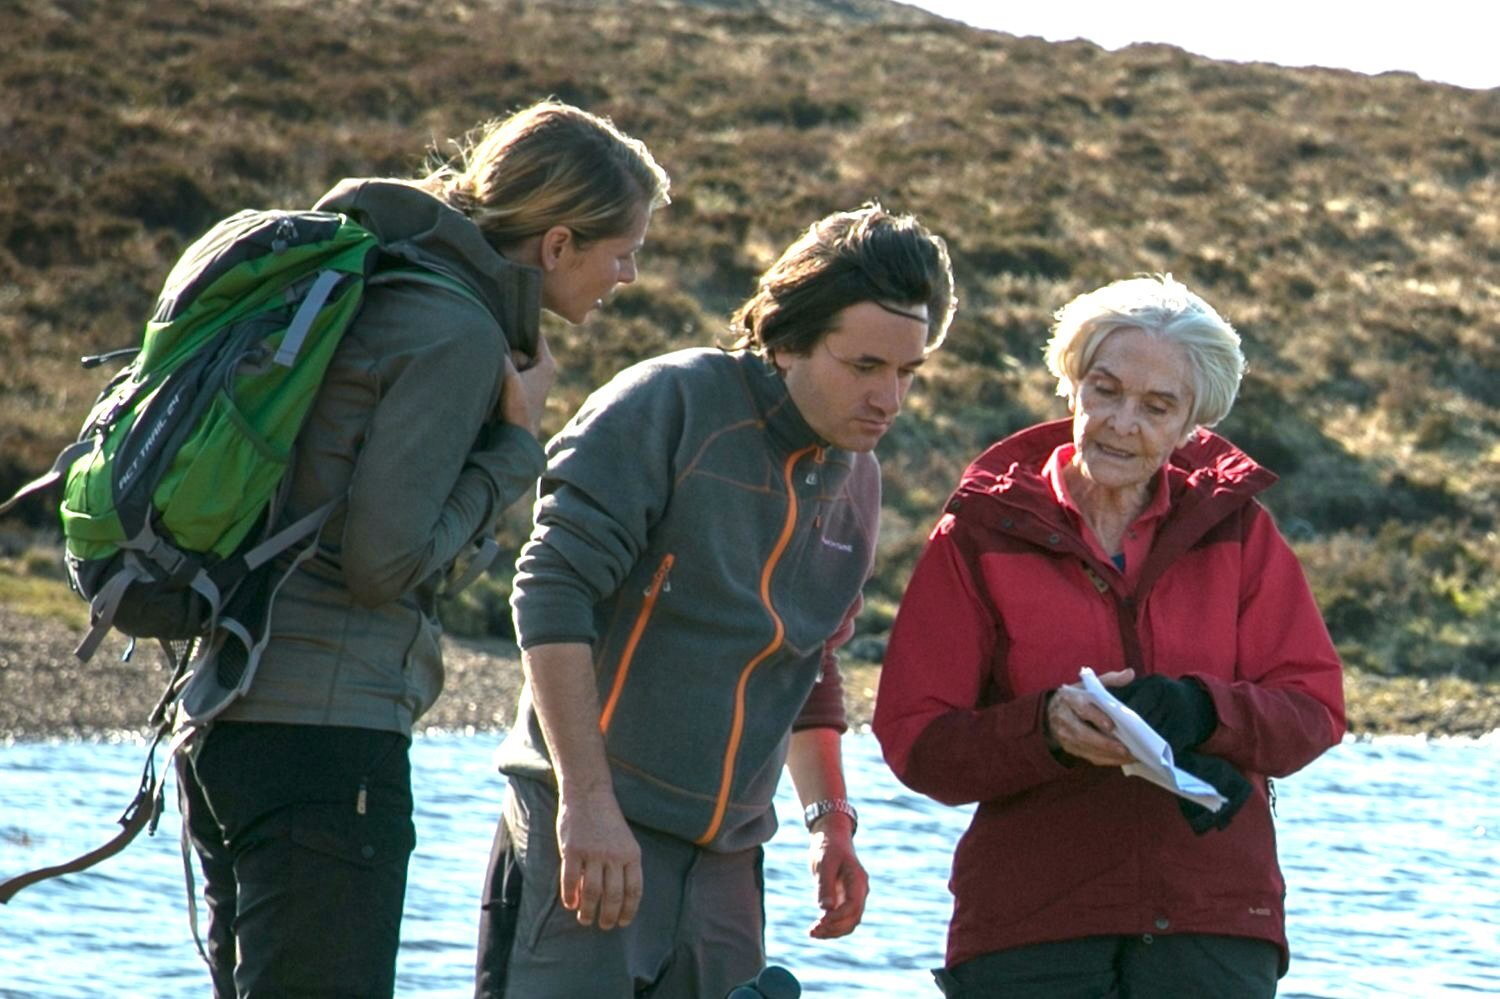 Simon chats over a scene where Edie meets a hiker with Sheila Hancock and Daniela Bräuer